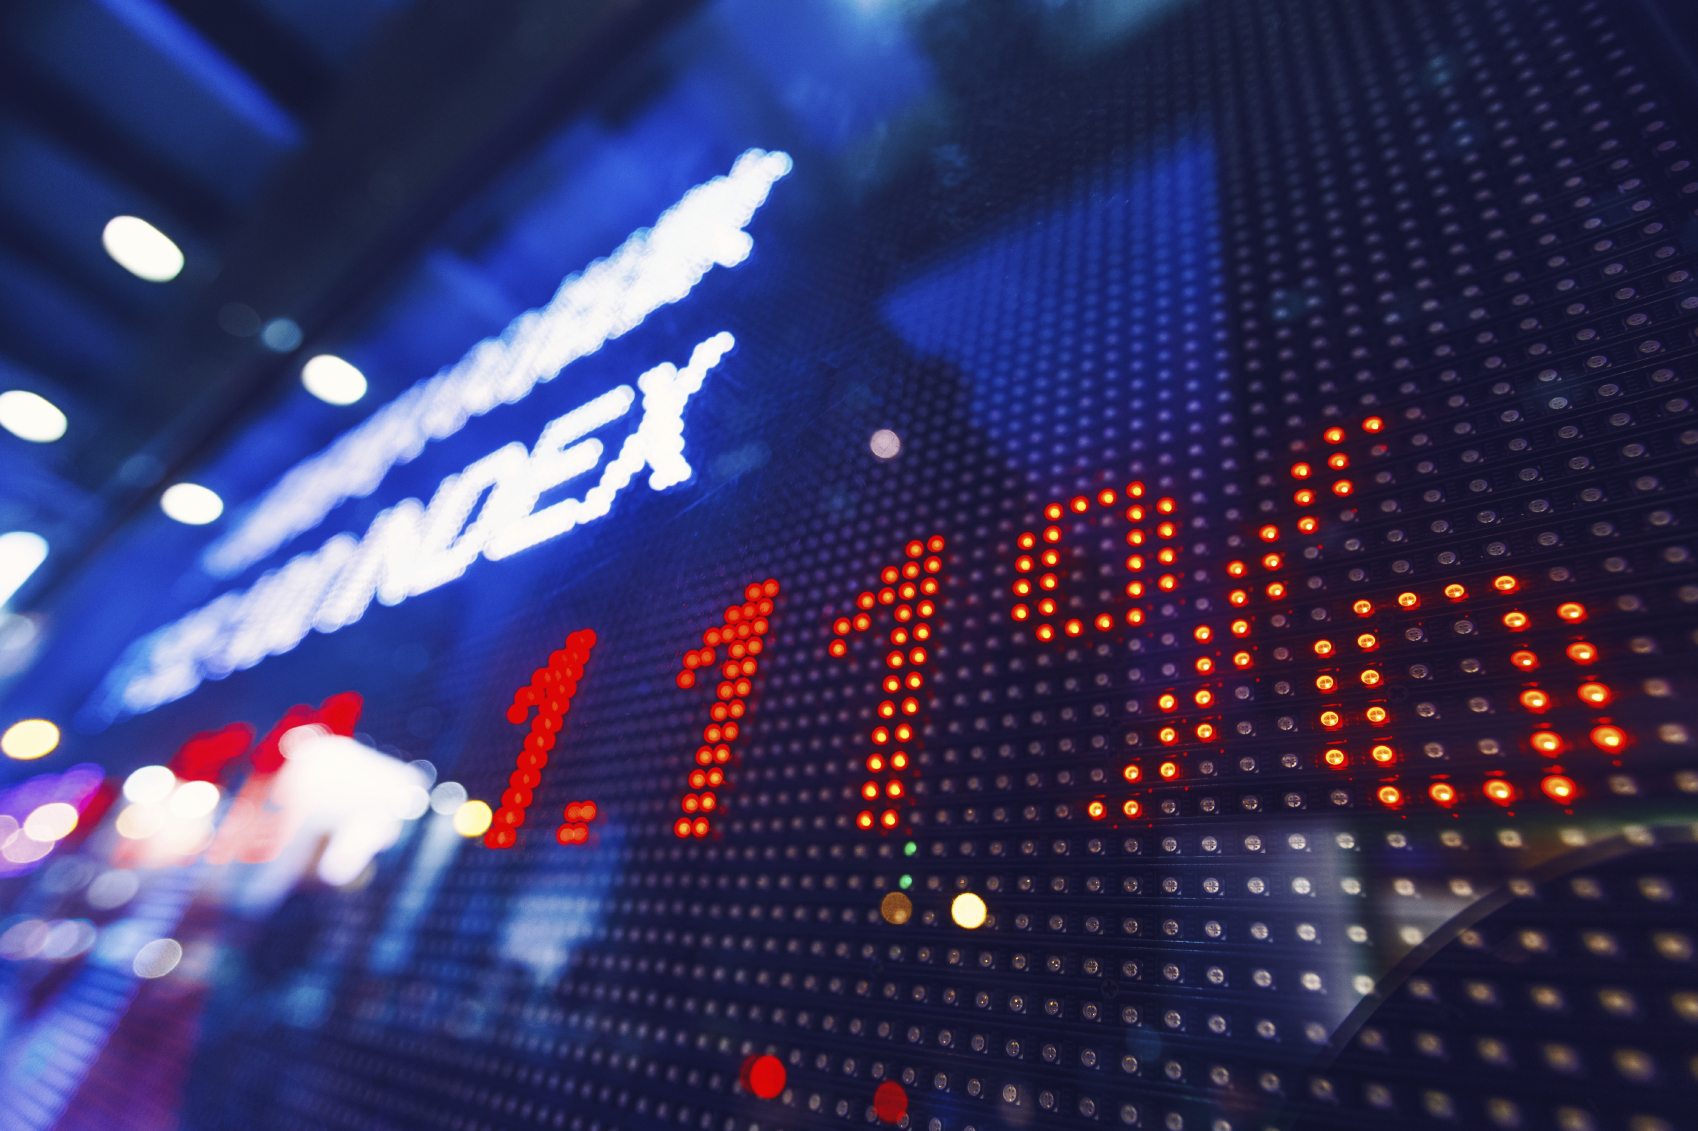 The stock market affects your health in surprising ways. Here's how to protect yourself.